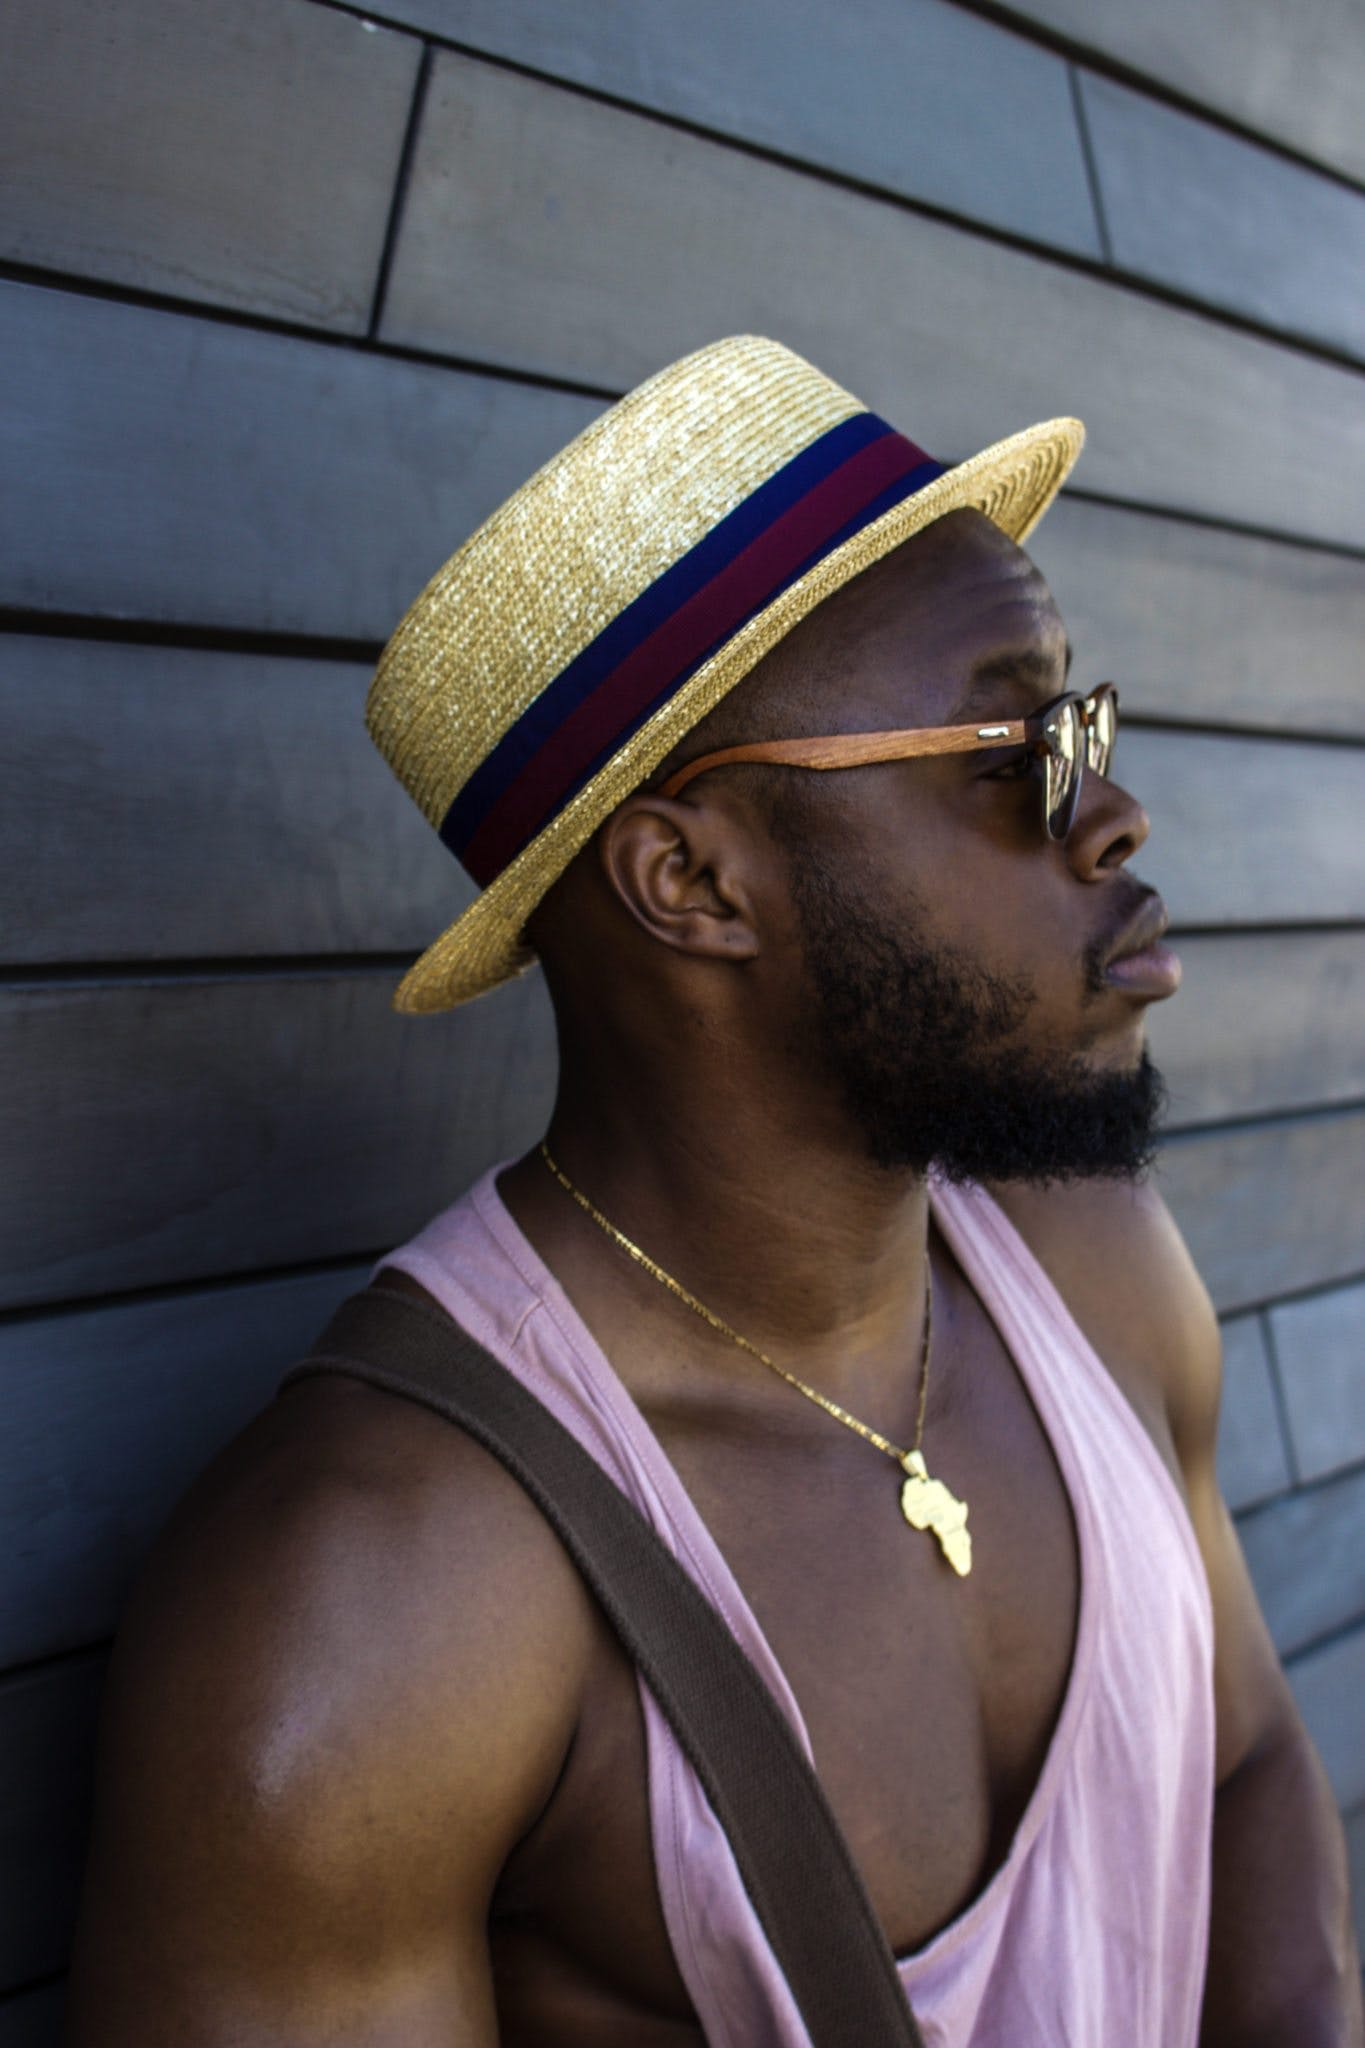 Man Wearing Hat and Pink Tank Top